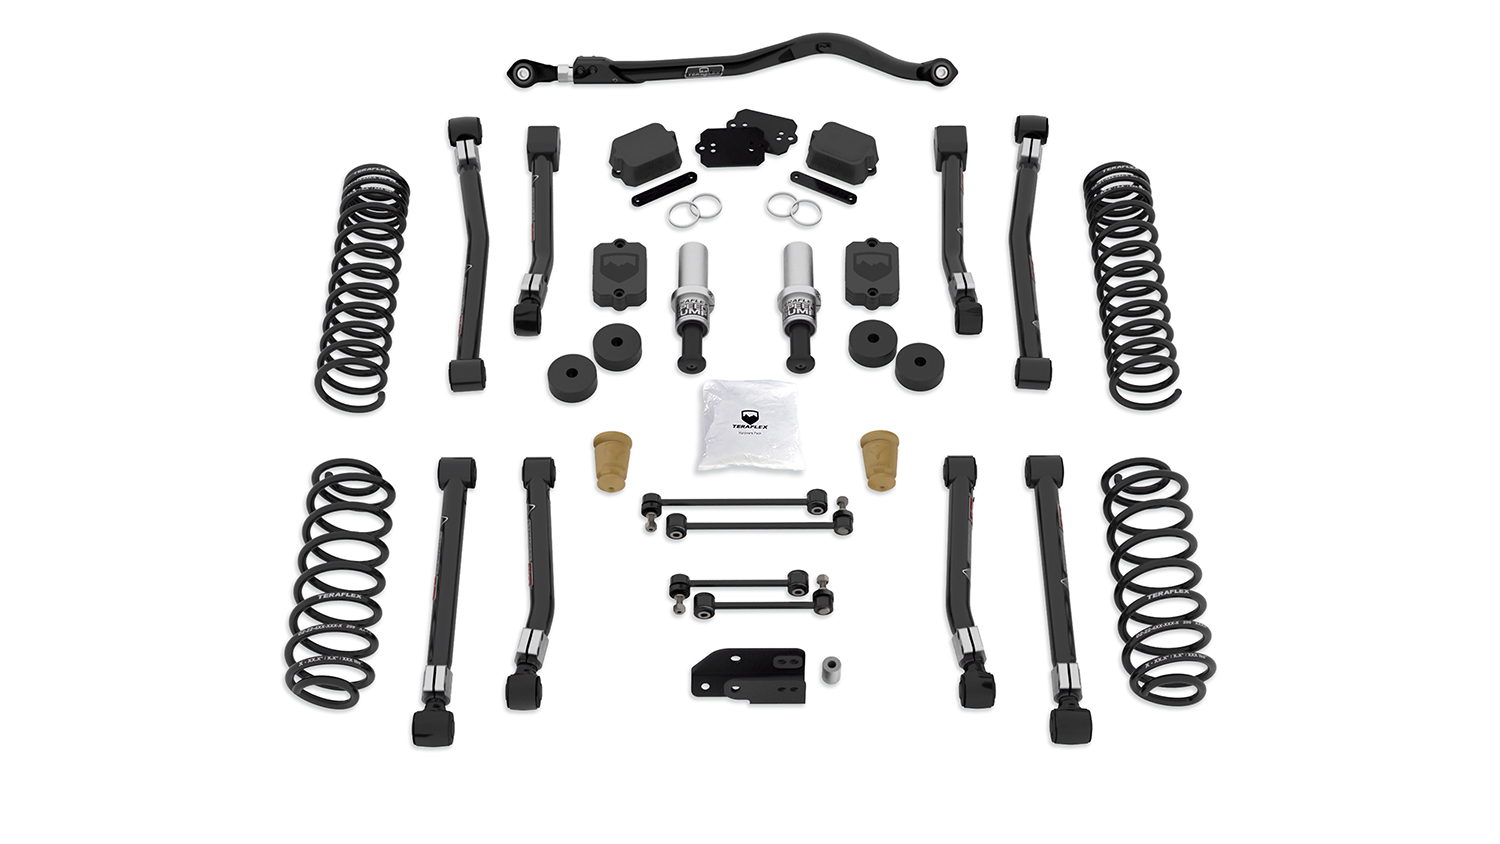 Teraflex 2.5in Alpine RT2 Short Arm Suspension System - No Shocks - JL 4Dr